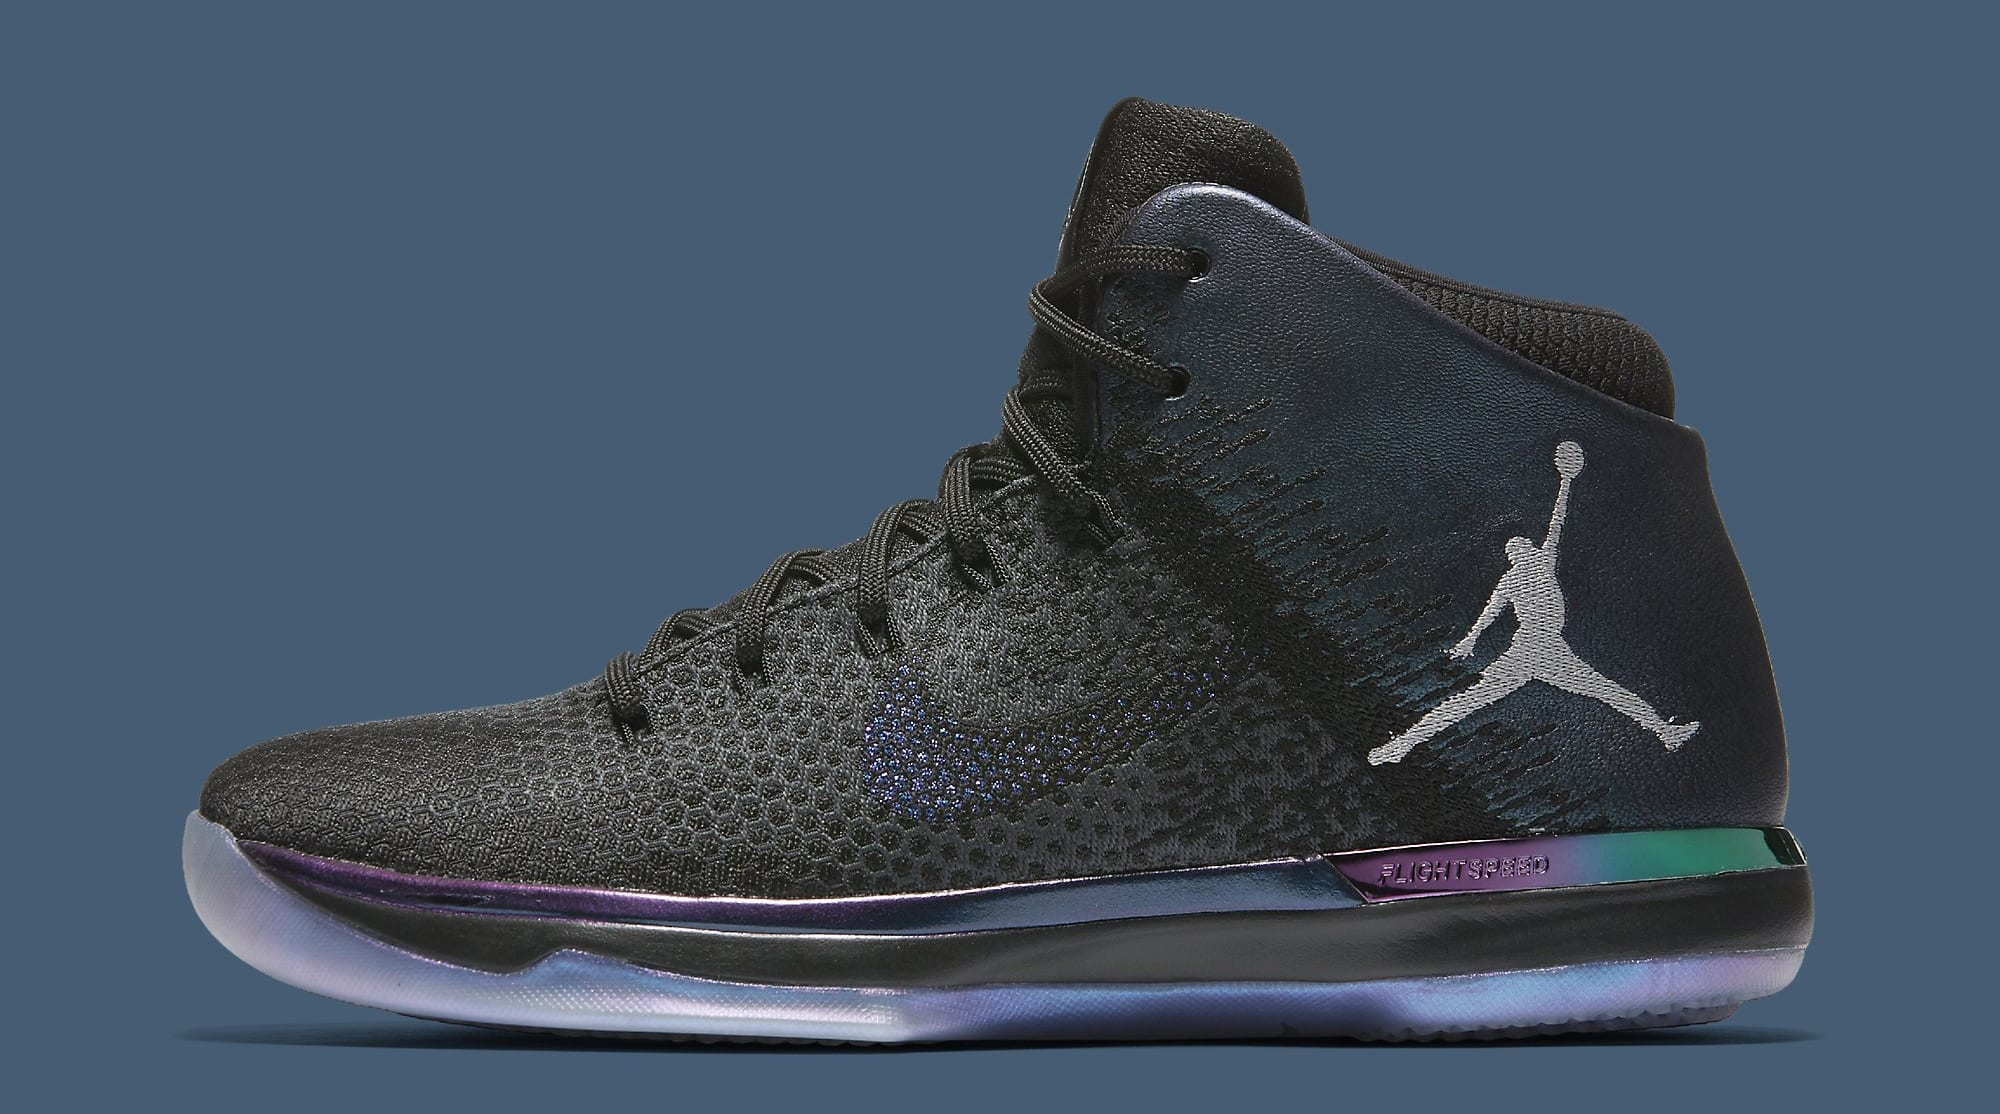 Air Jordan 31 All Star Hornets 905847-004 Profile